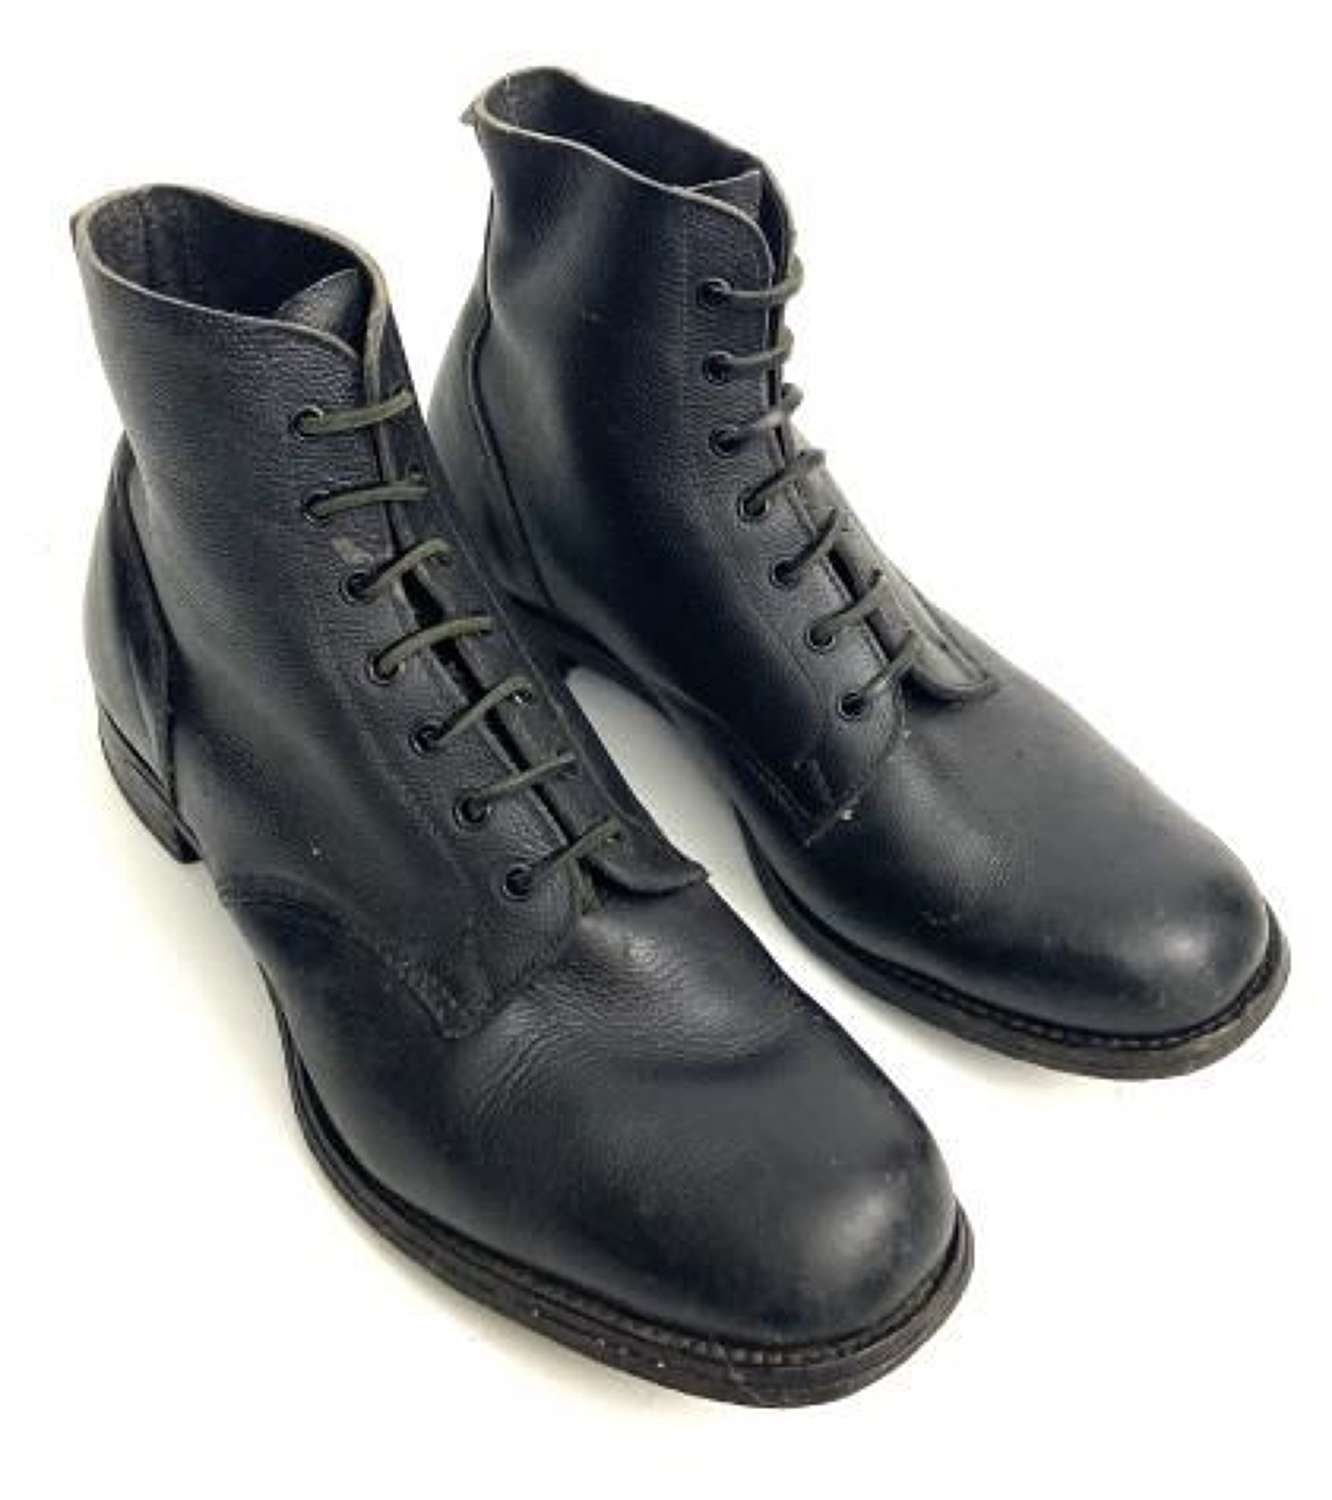 Original 1943 Dated British Black Leather Boots by 'Adams Bros LTD' - Size 9